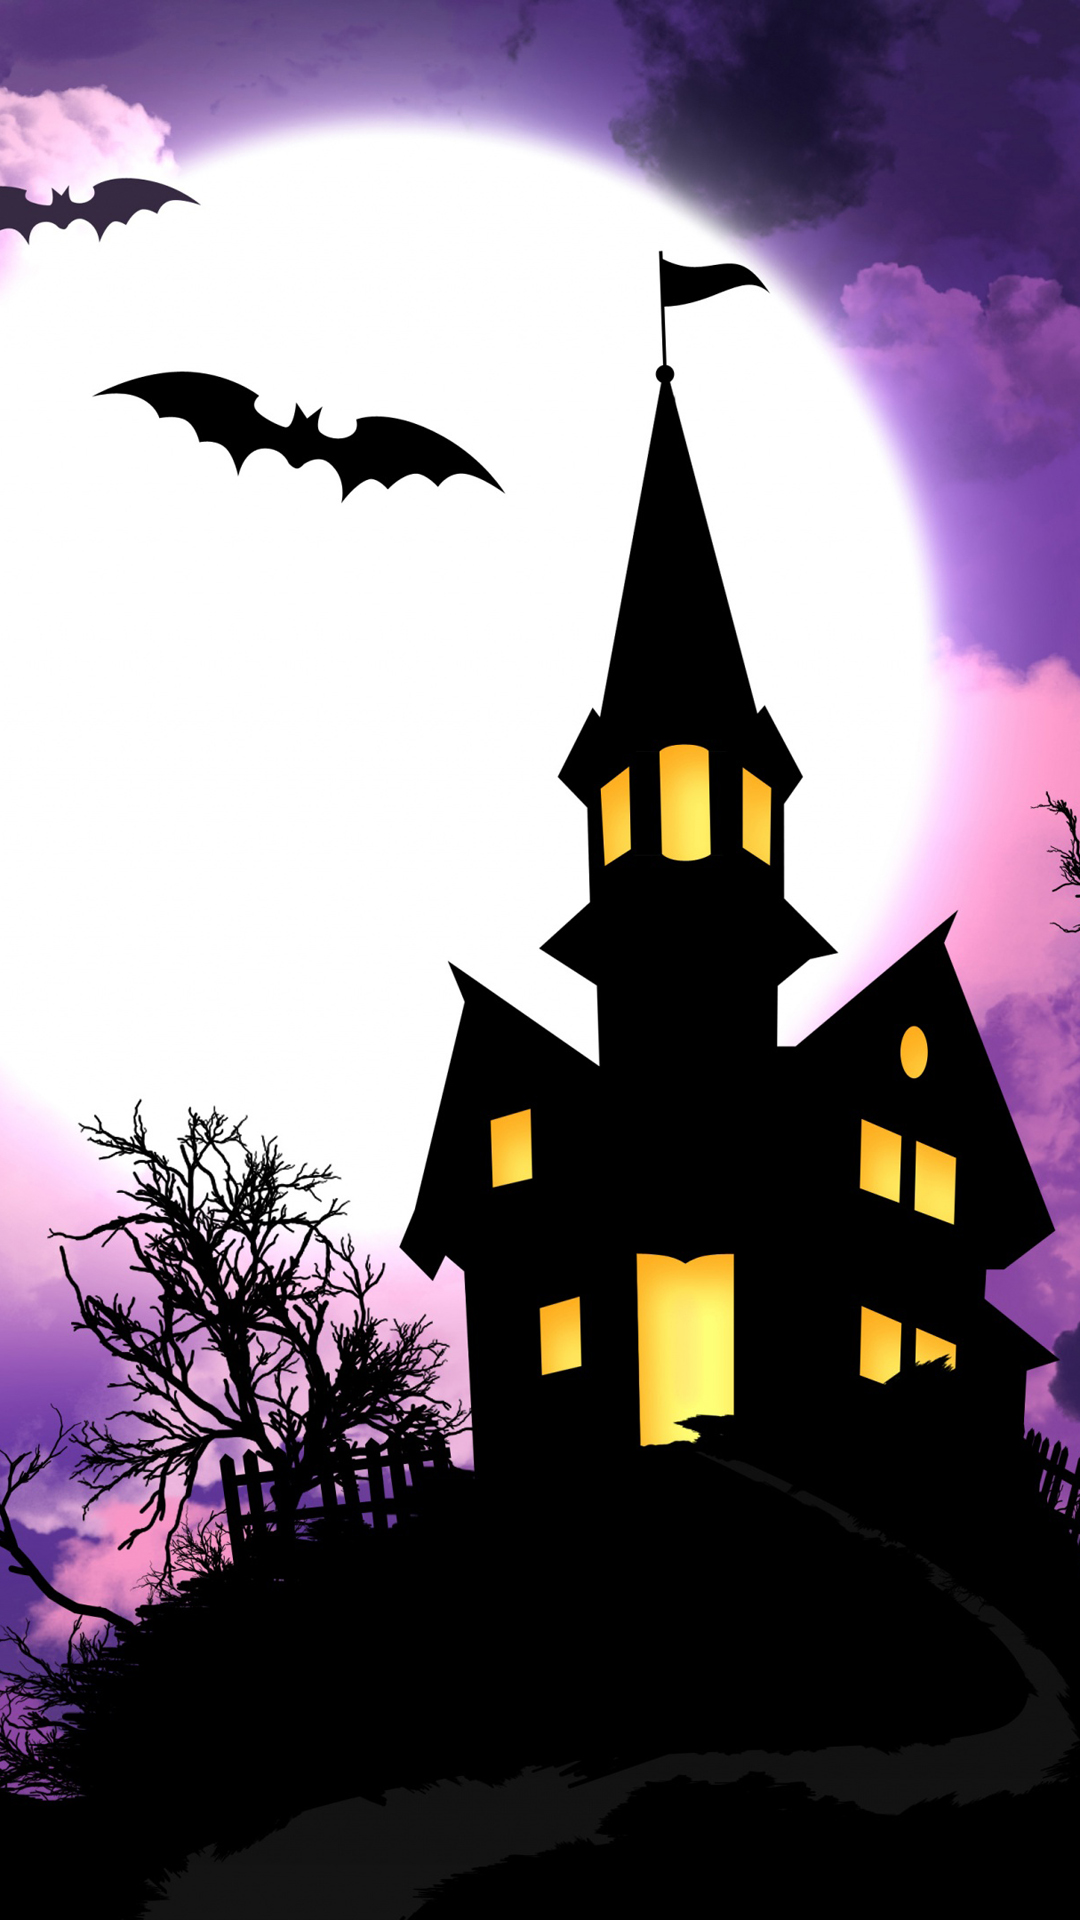 Halloween Spooky House.Spooky House Halloween Best Htc One Wallpapers Free And